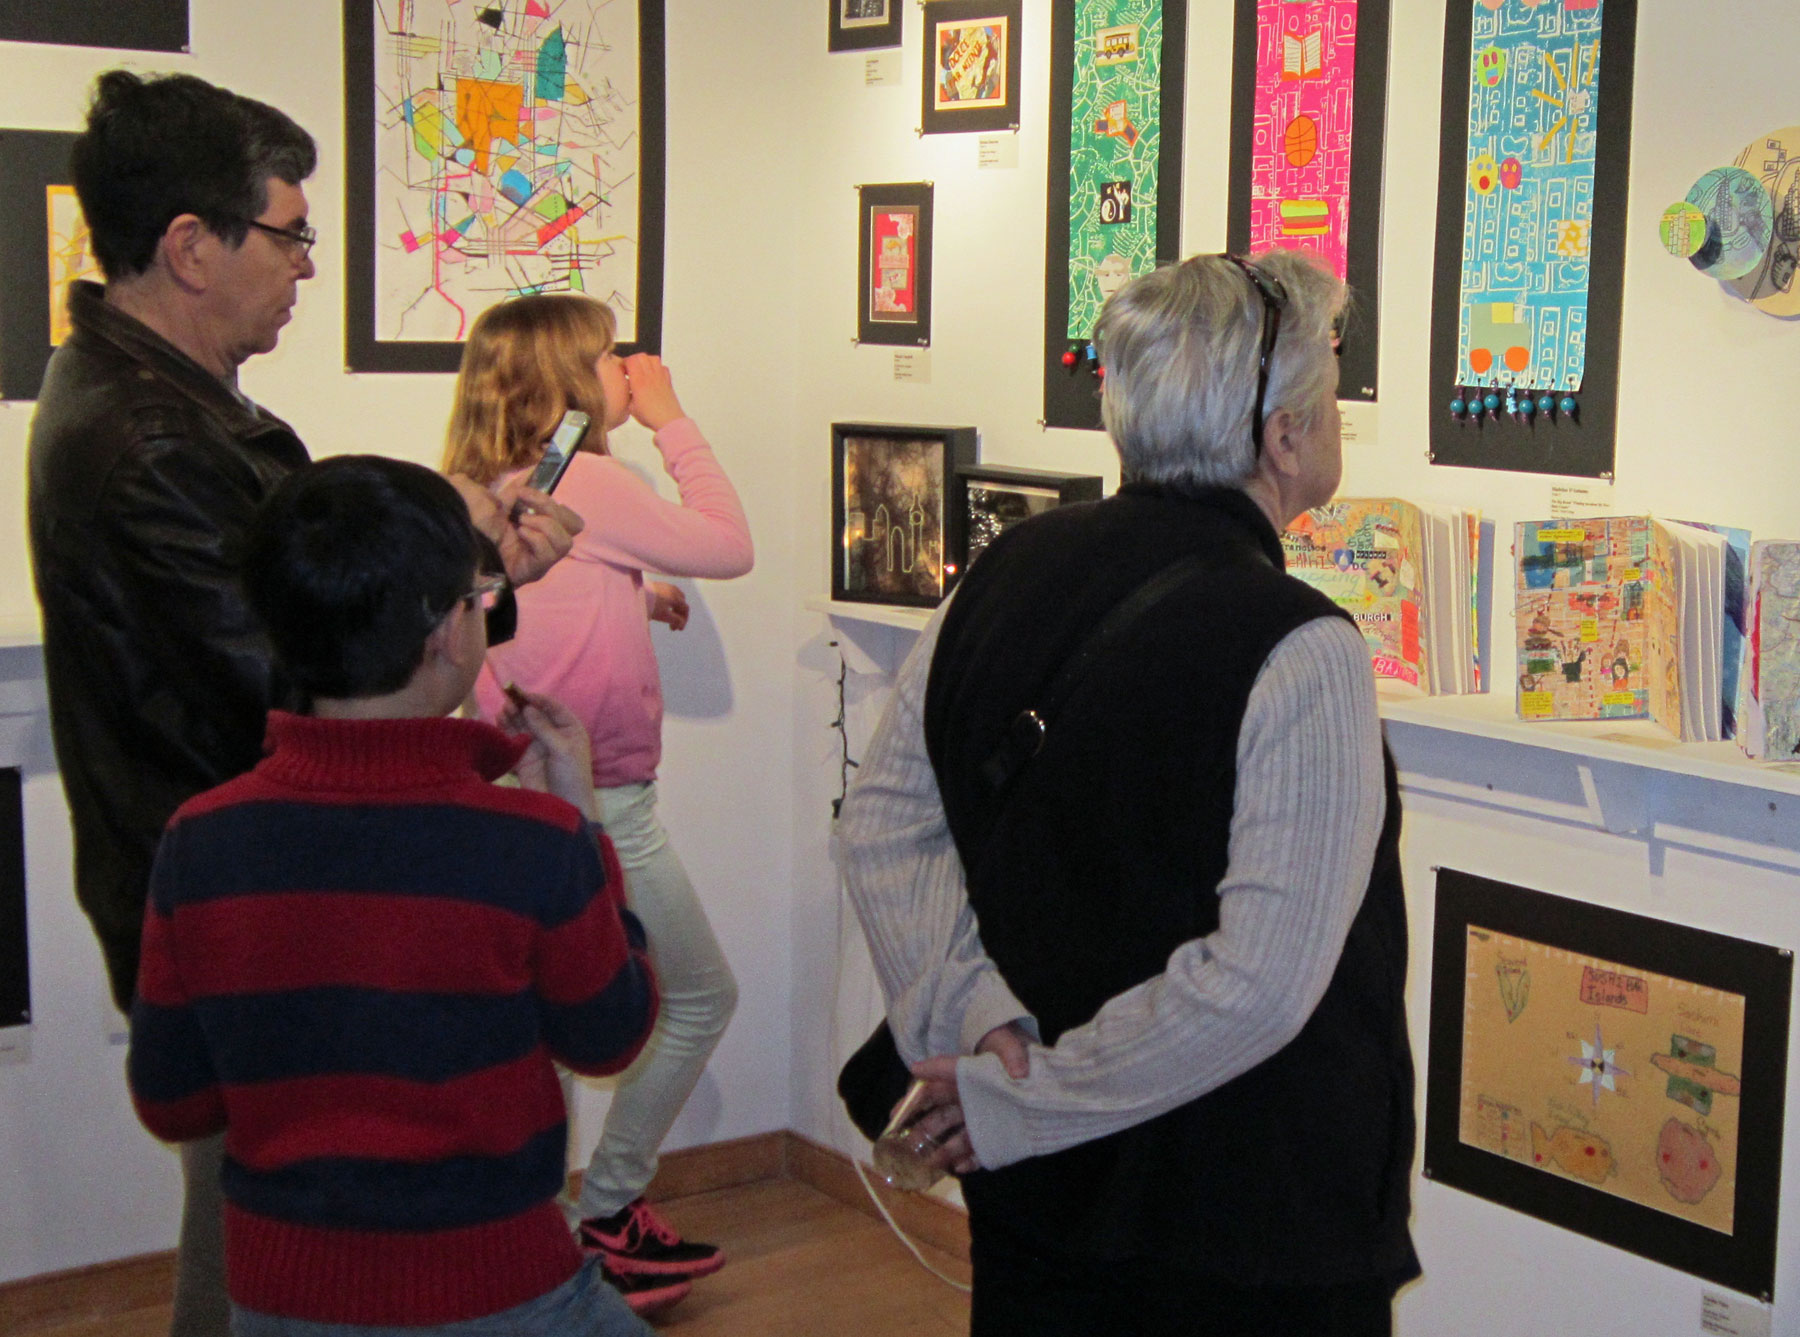 Guests enjoy a Youth Art Month exhibit